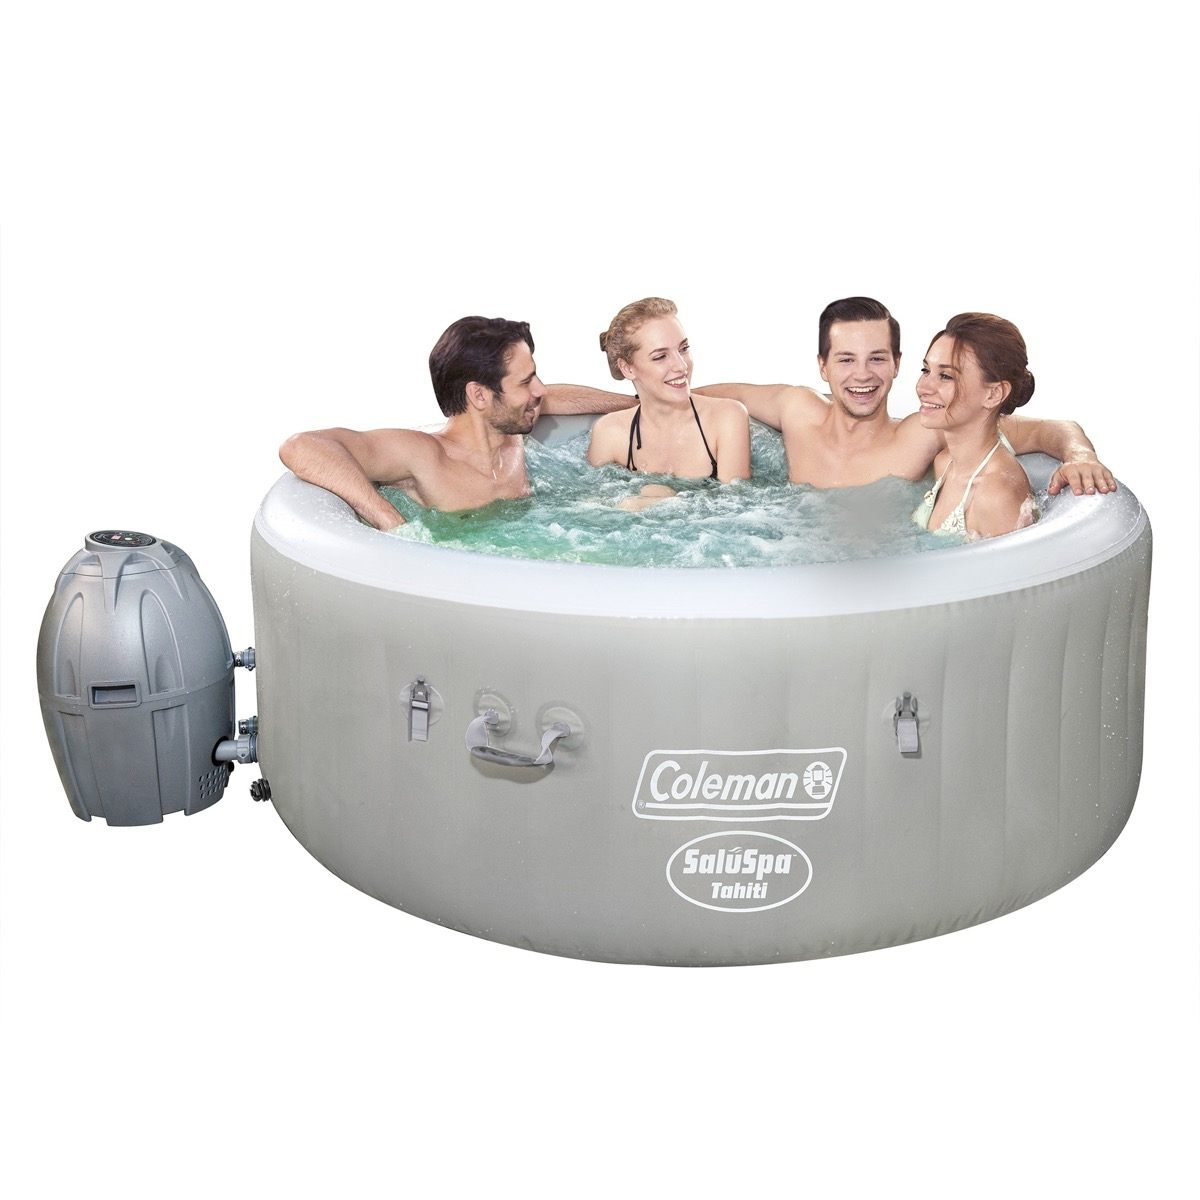 four people in an inflatable hot tub